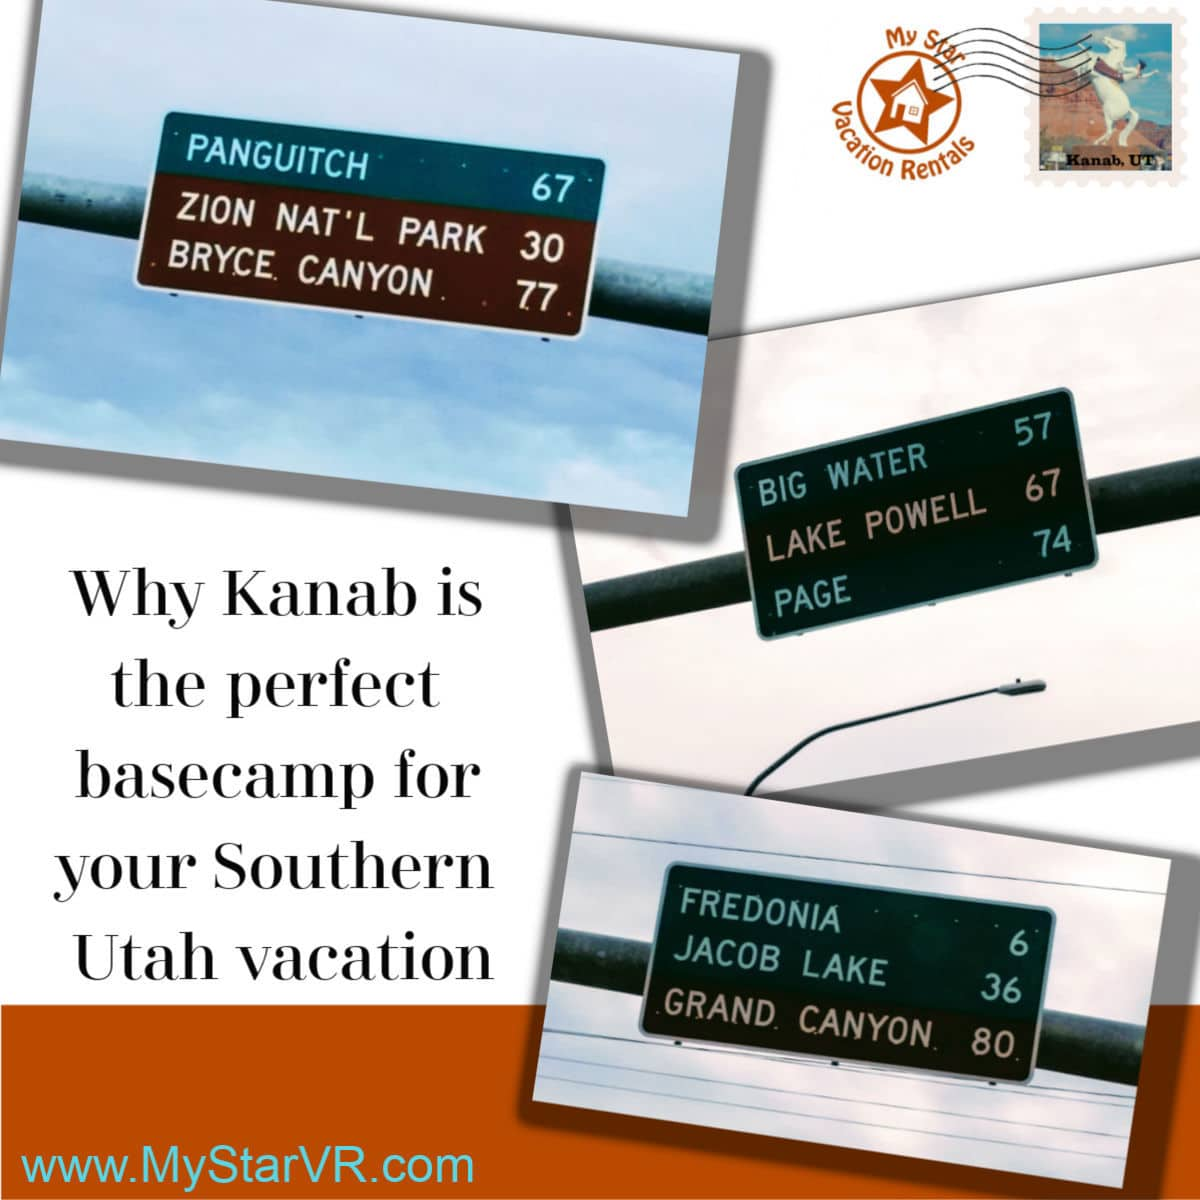 How far is it to the parks from Kanab Utah